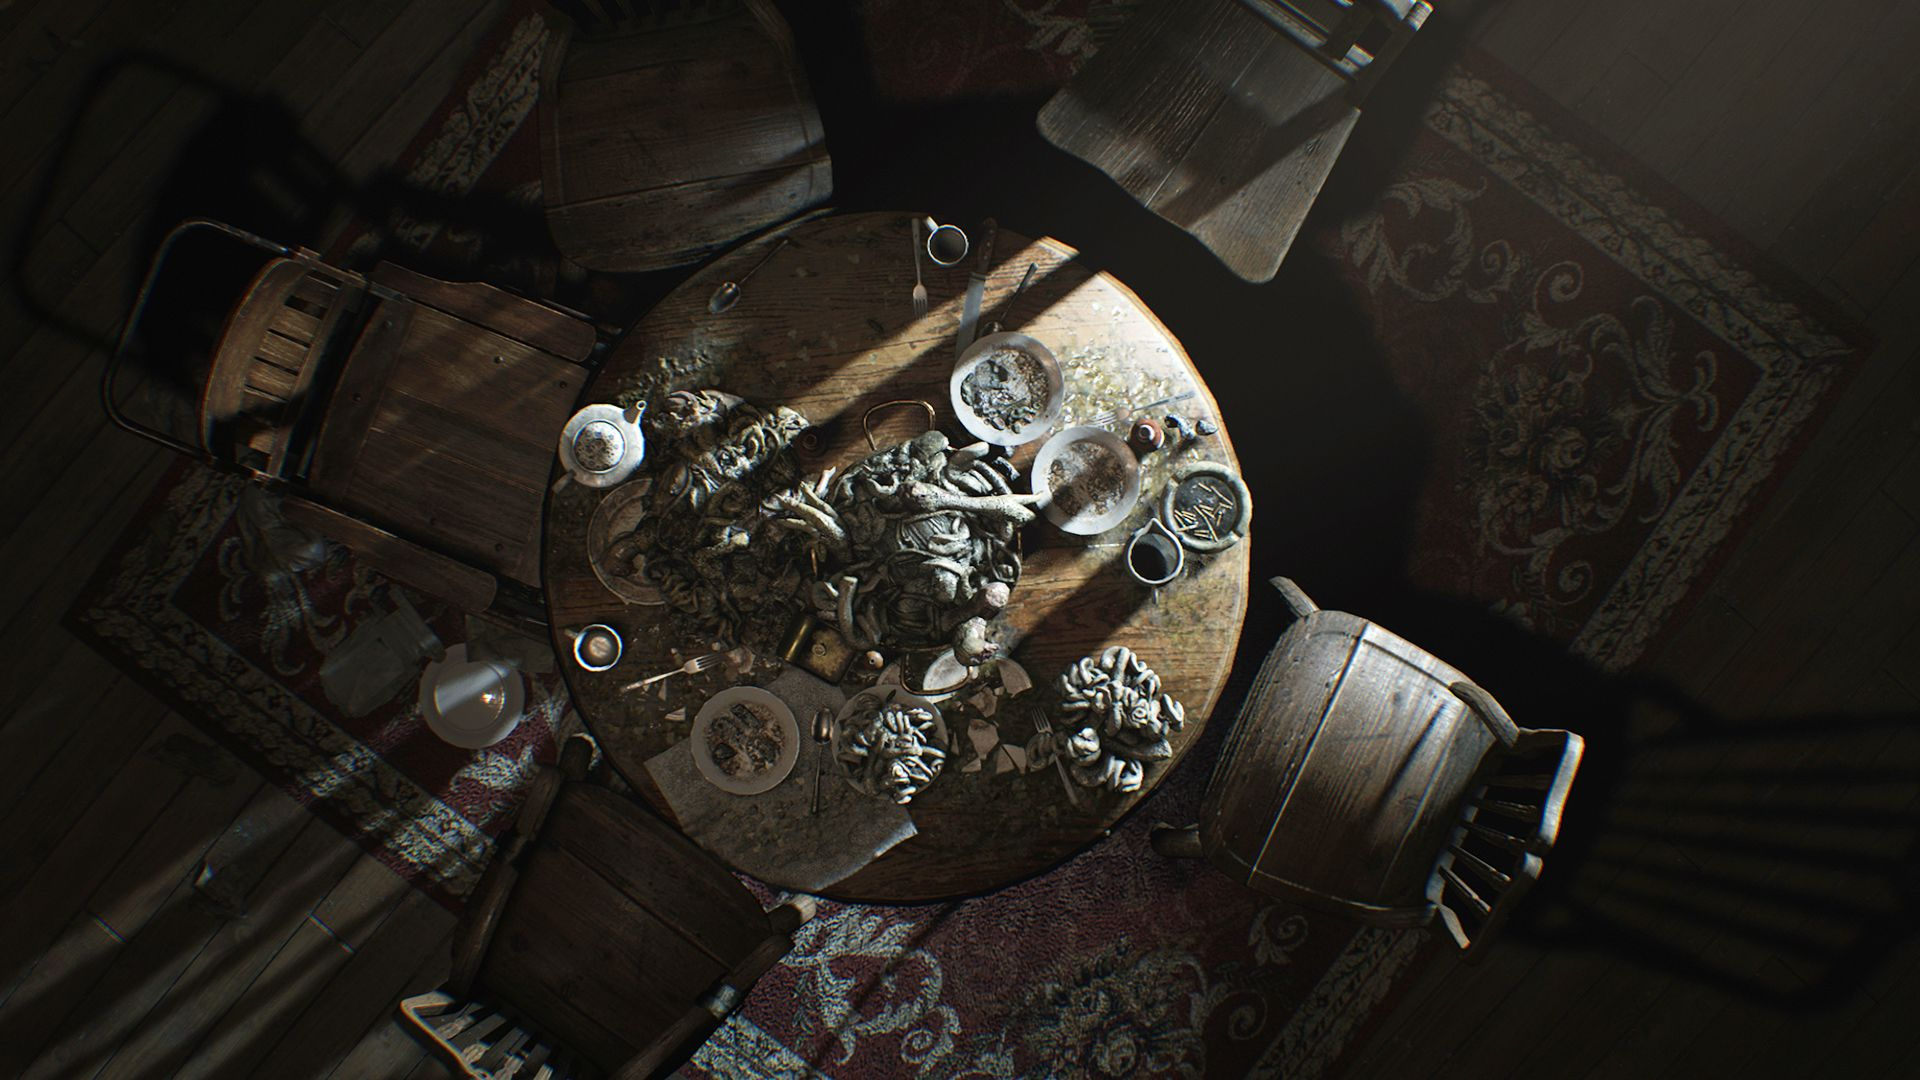 Nearly 1 Million Players Have Visited Resident Evil 7's Baker Mansion Since Launch